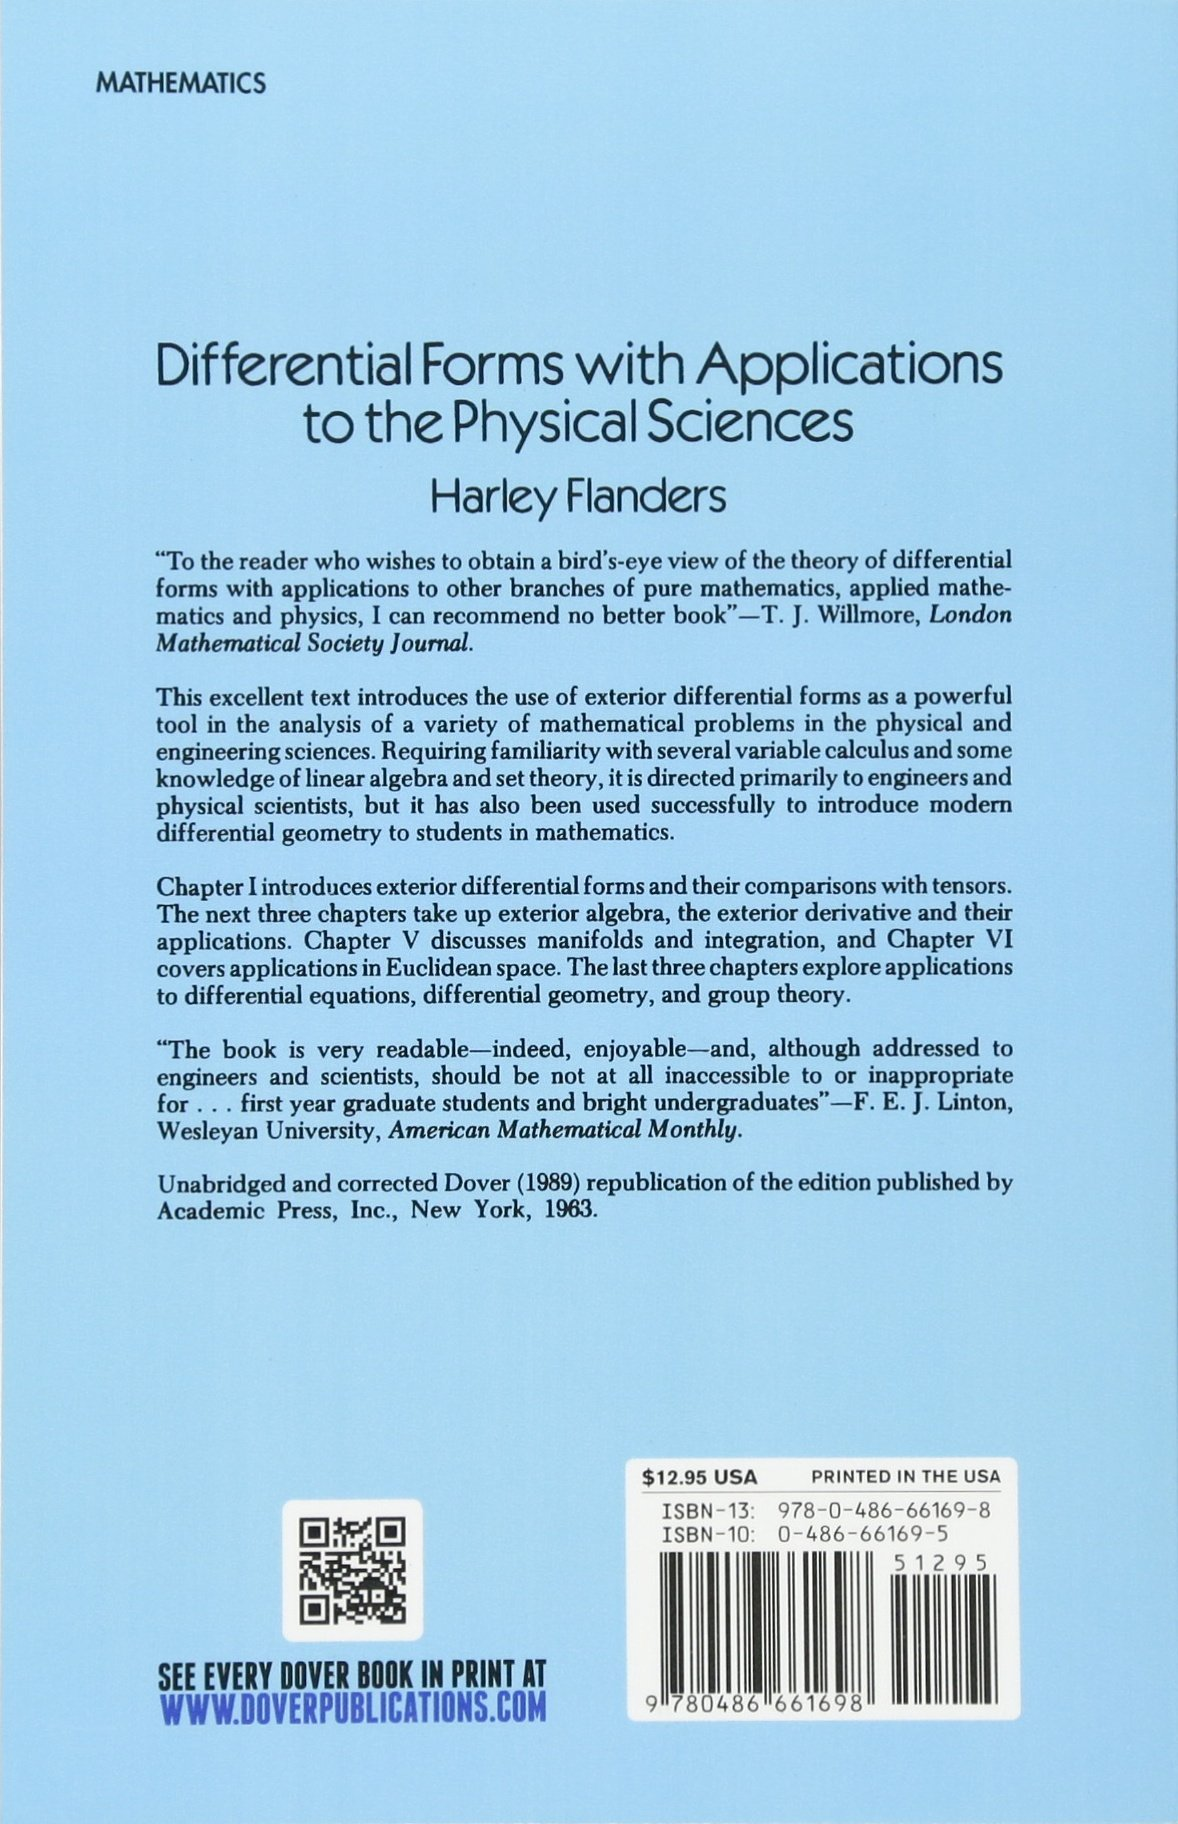 amazon differential forms with applications to the physical